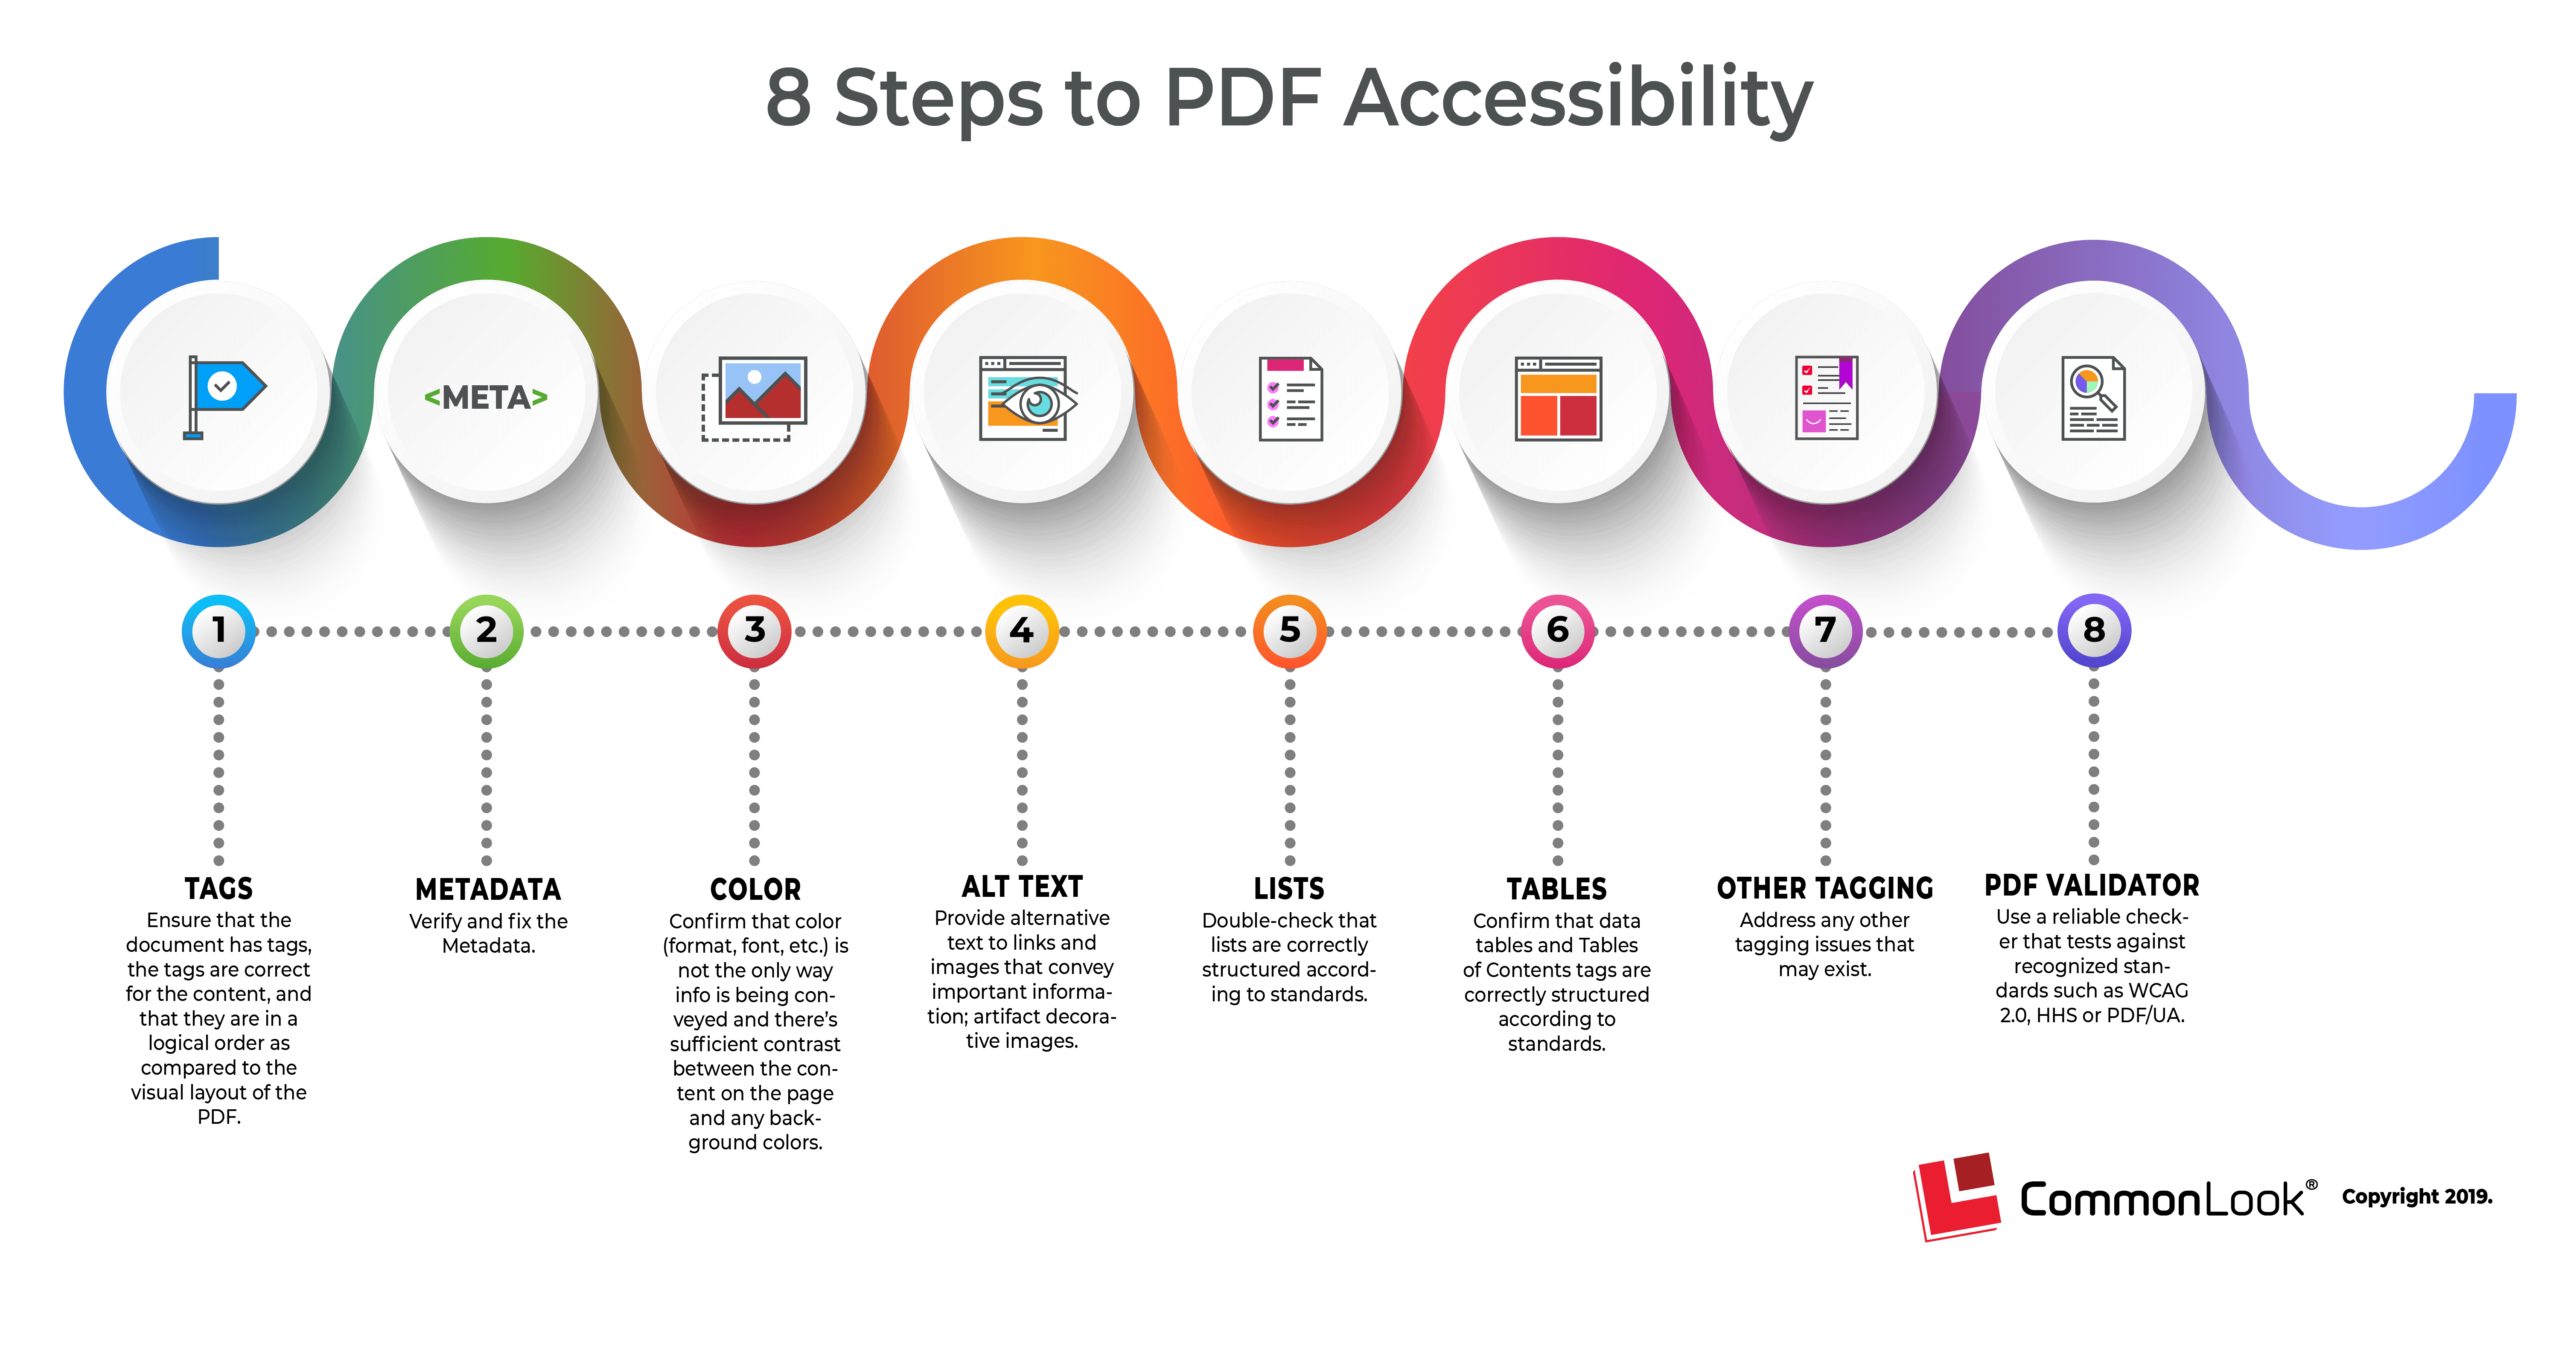 infographic showing the 8 steps to pdf accessibility